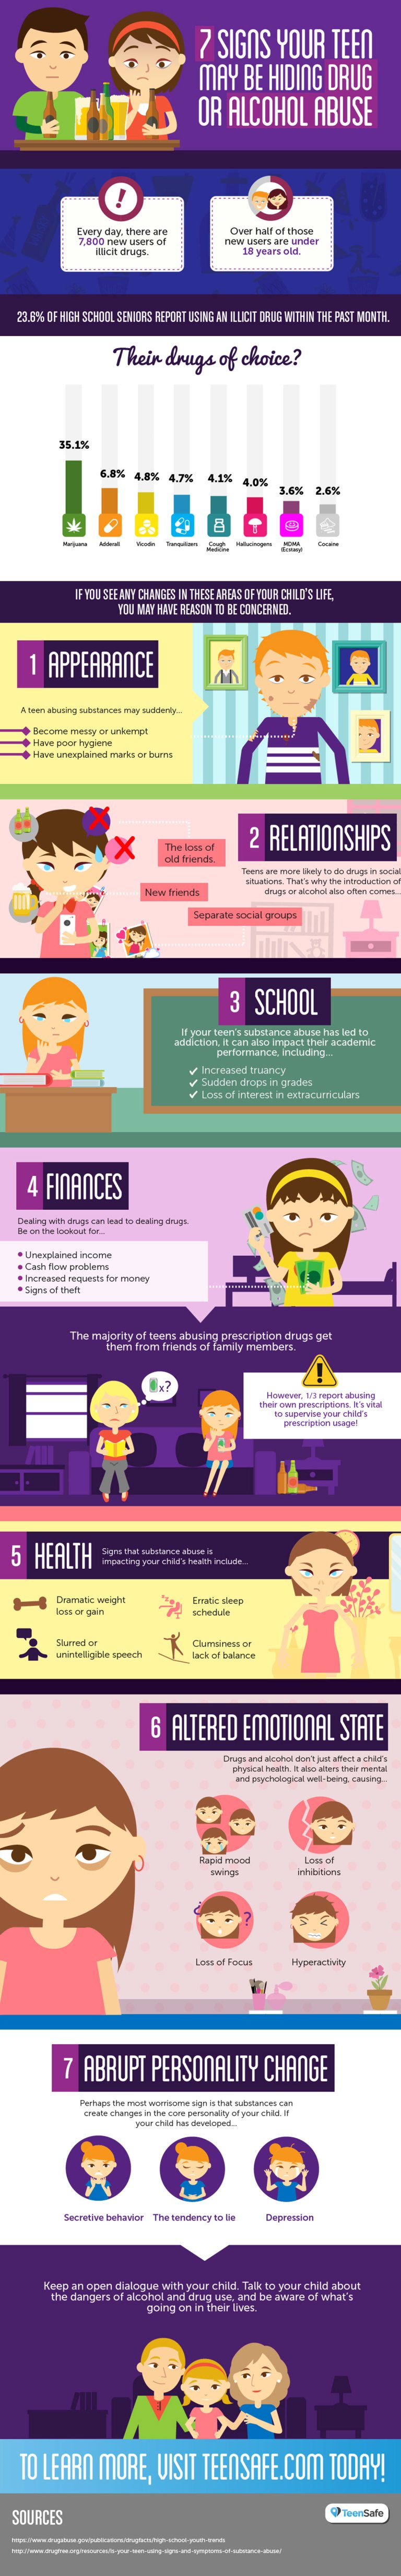 Signs-your-Teen-is-Hiding-Alcohol-and-Drug-Abuse-Parenting-Infographic